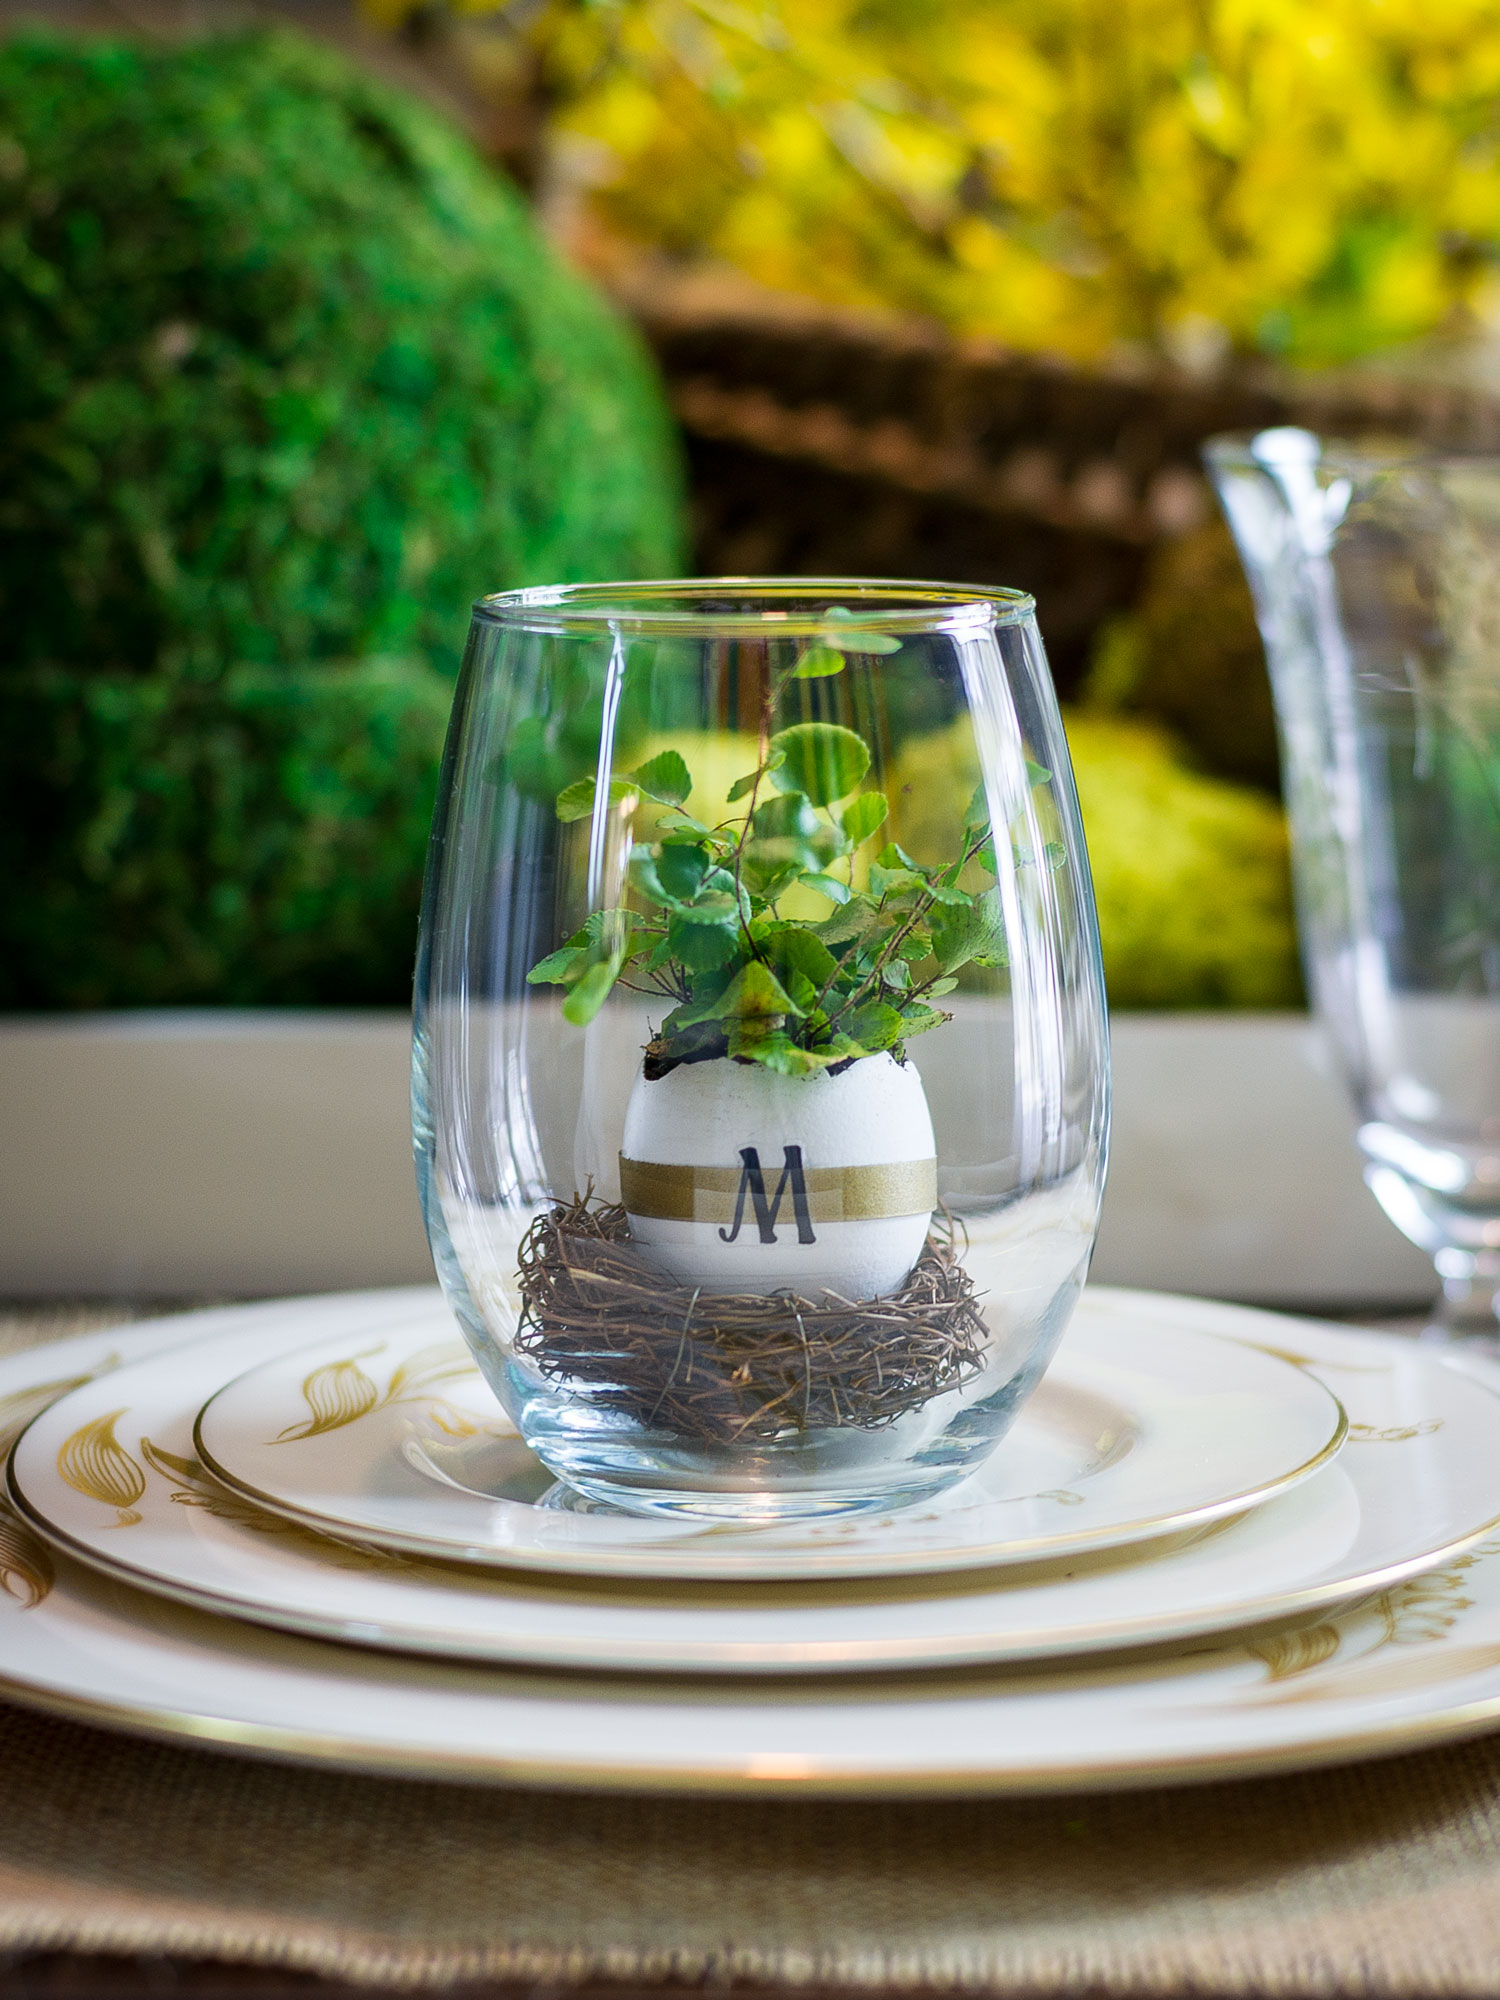 Terrarium Place Card for an Easter table by Sam Henderson of Today's Nest for HGTV.